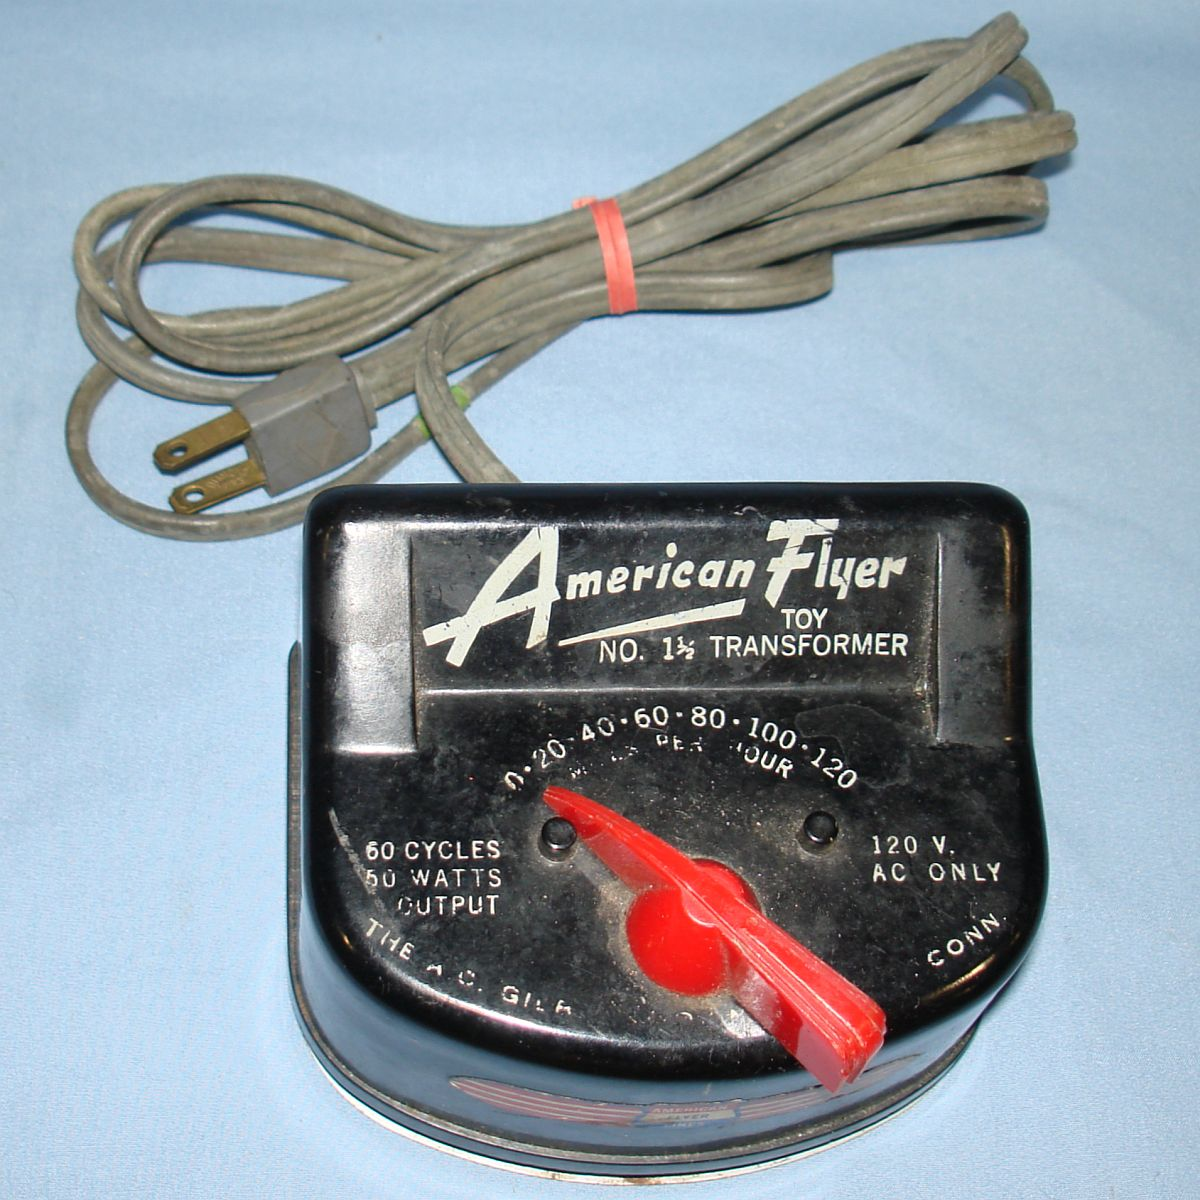 AC Gilbert American Flyer Lines 120 Volt Toy Train Transformer Model #1 1/2